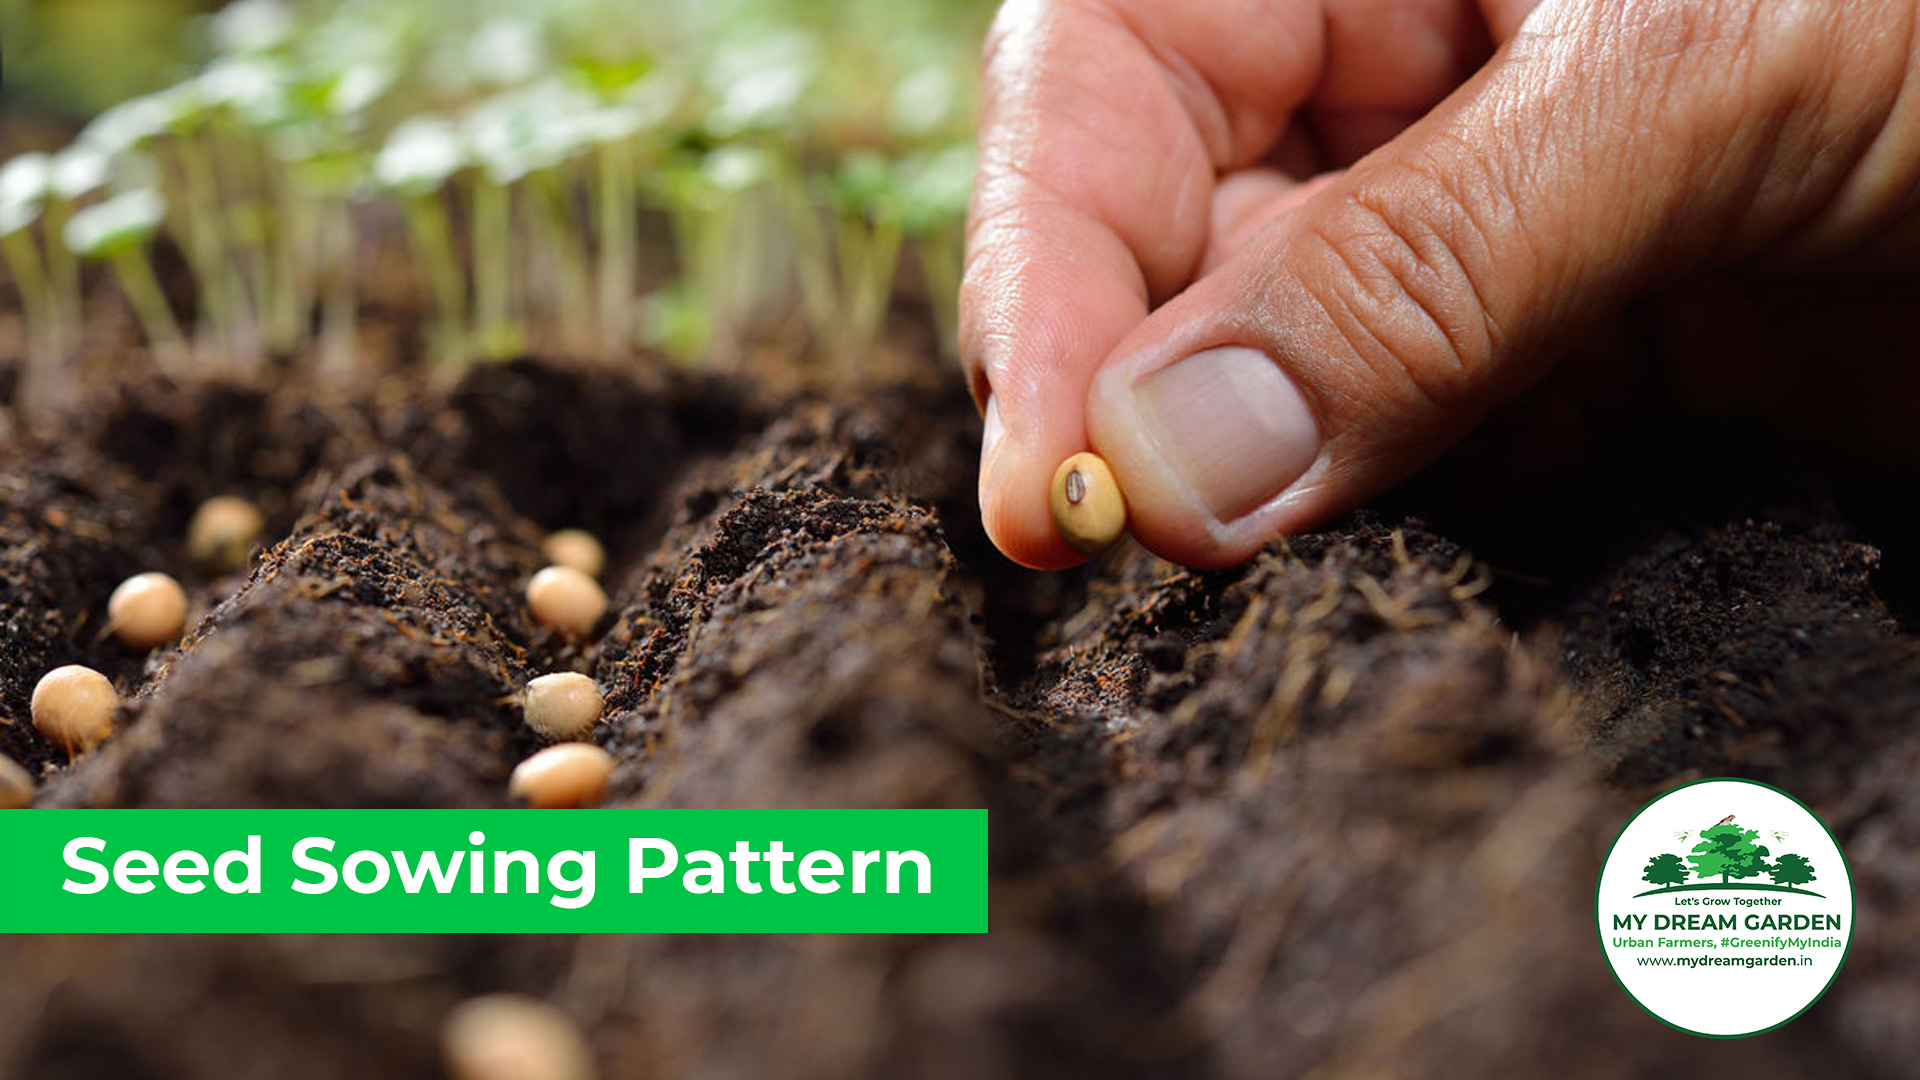 Pattern of Sowing Seeds